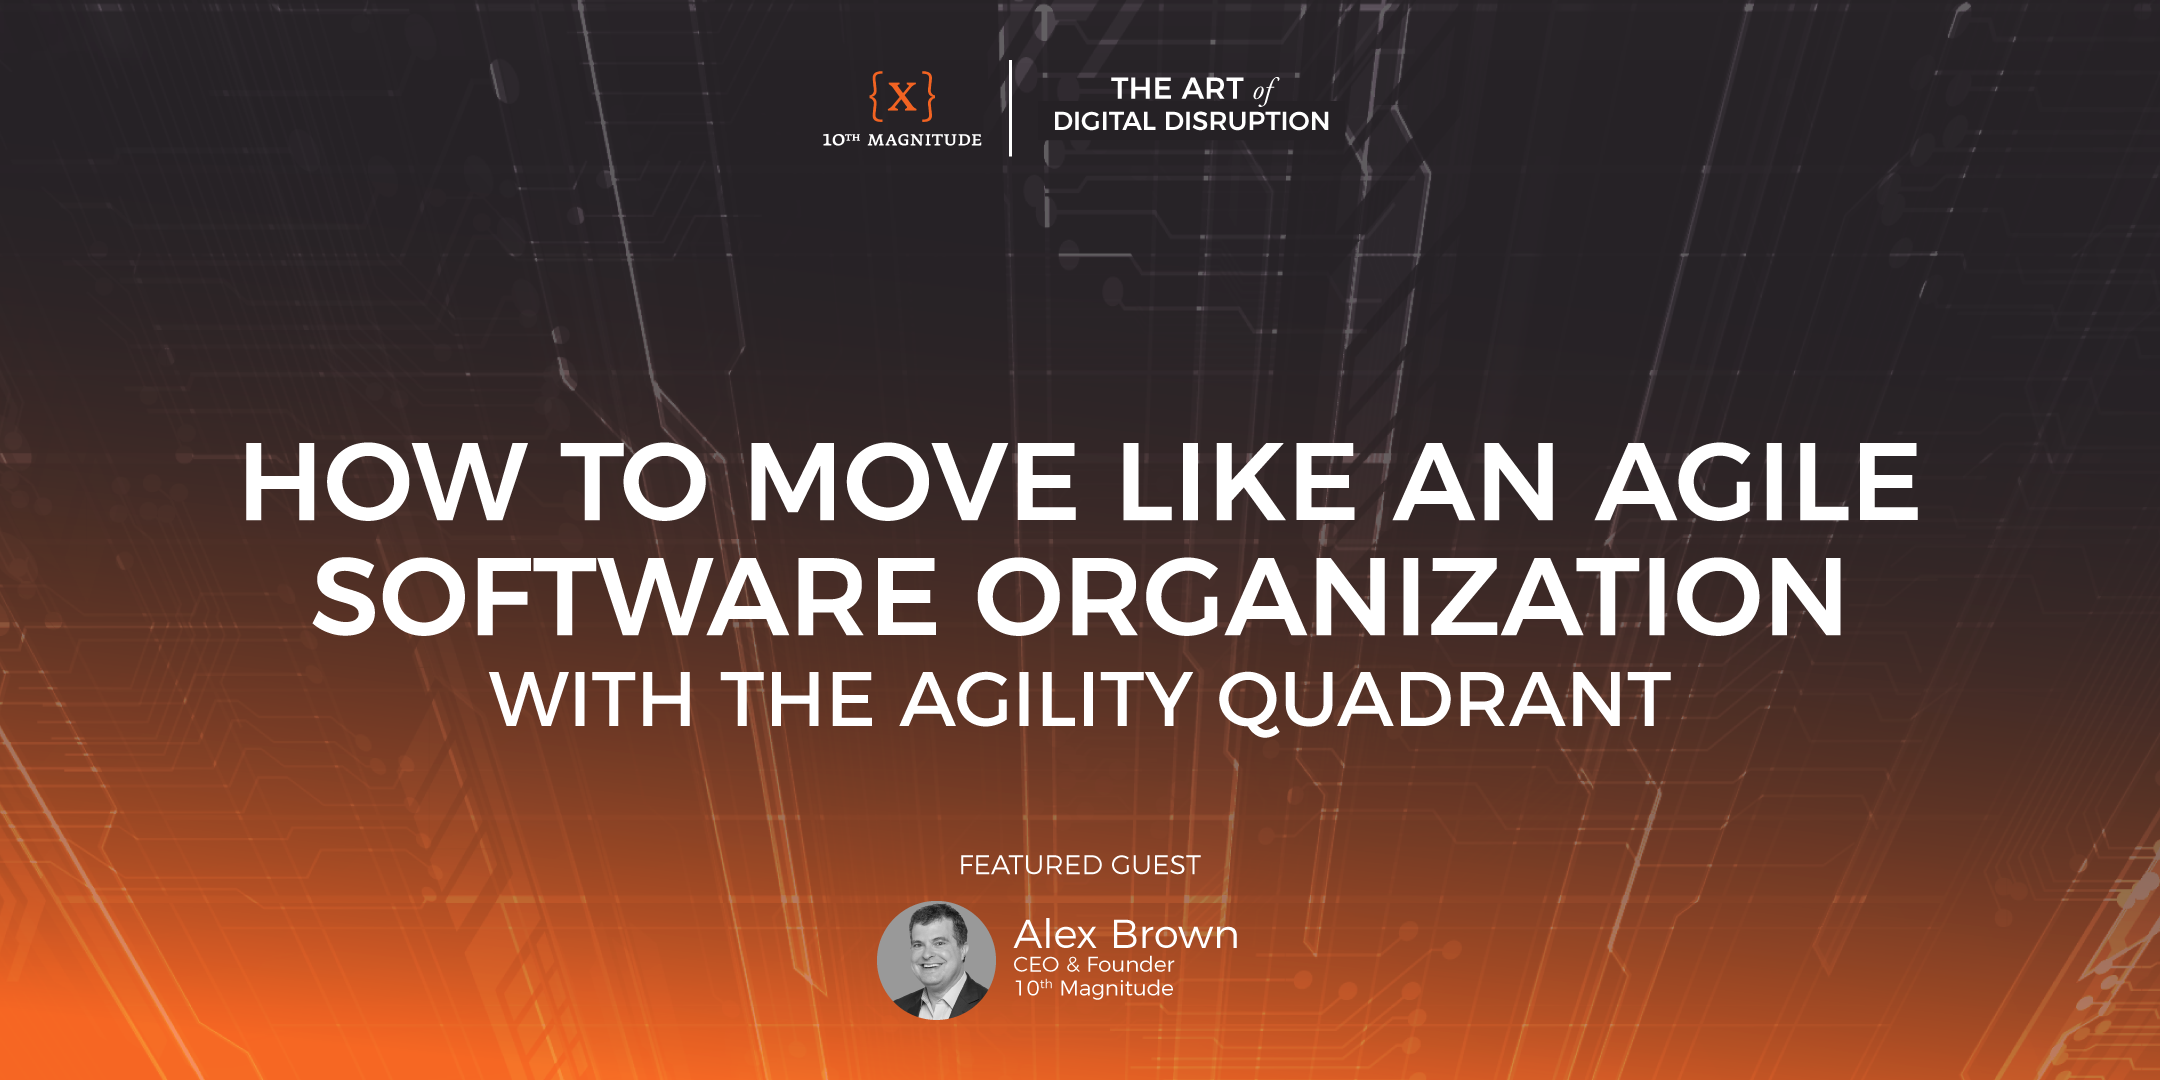 Podcast Episode 10 - How to Move Like an Agile Software Organization (with the Agility Quadrant)